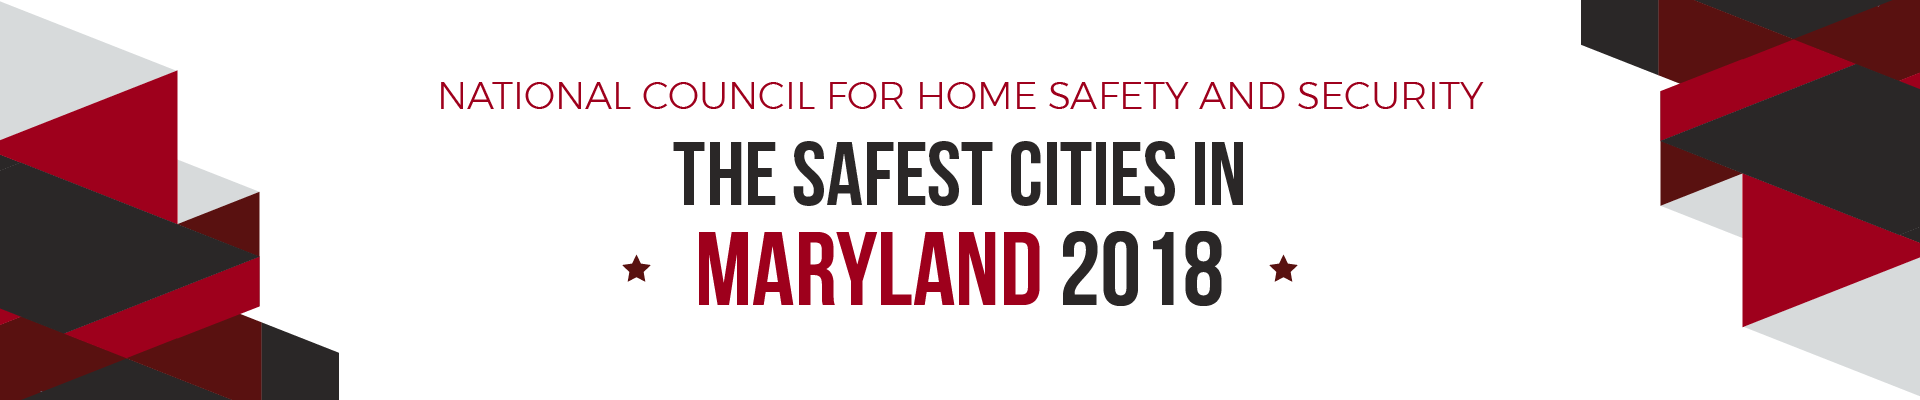 maryland safe cities 2018